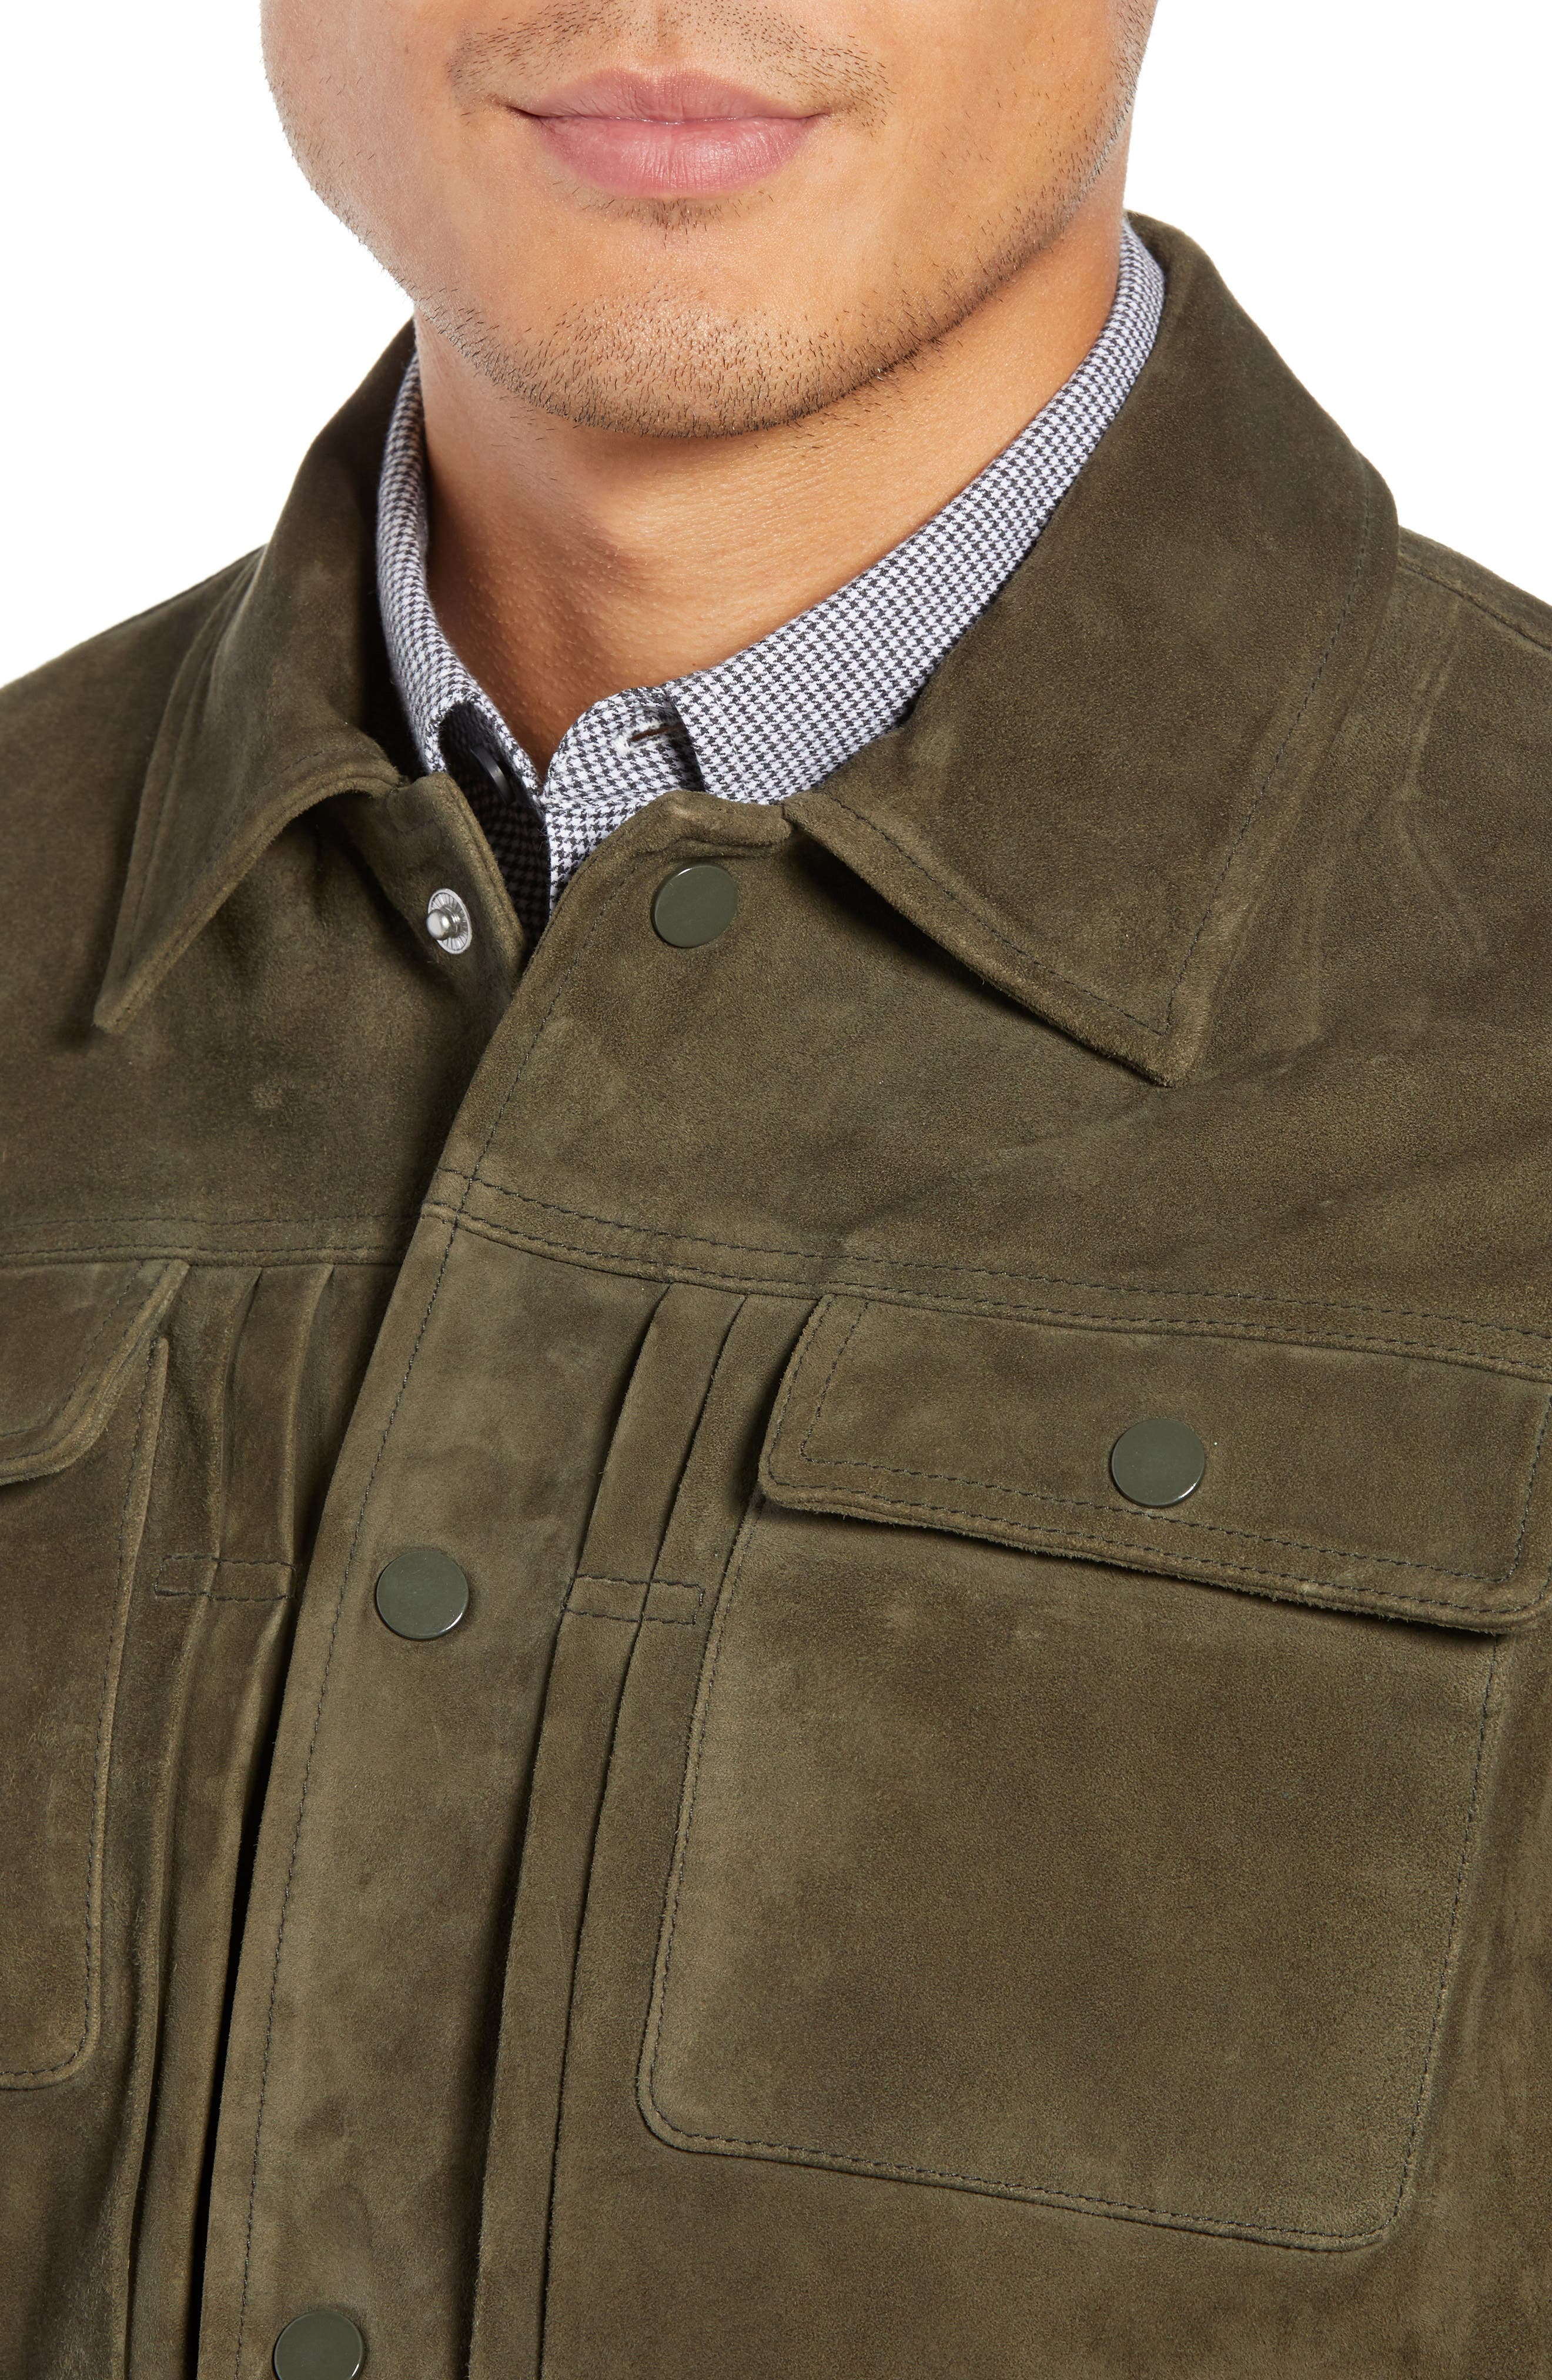 Suede Trucker Jacket,                             Alternate thumbnail 4, color,                             PALERMO OLIVE